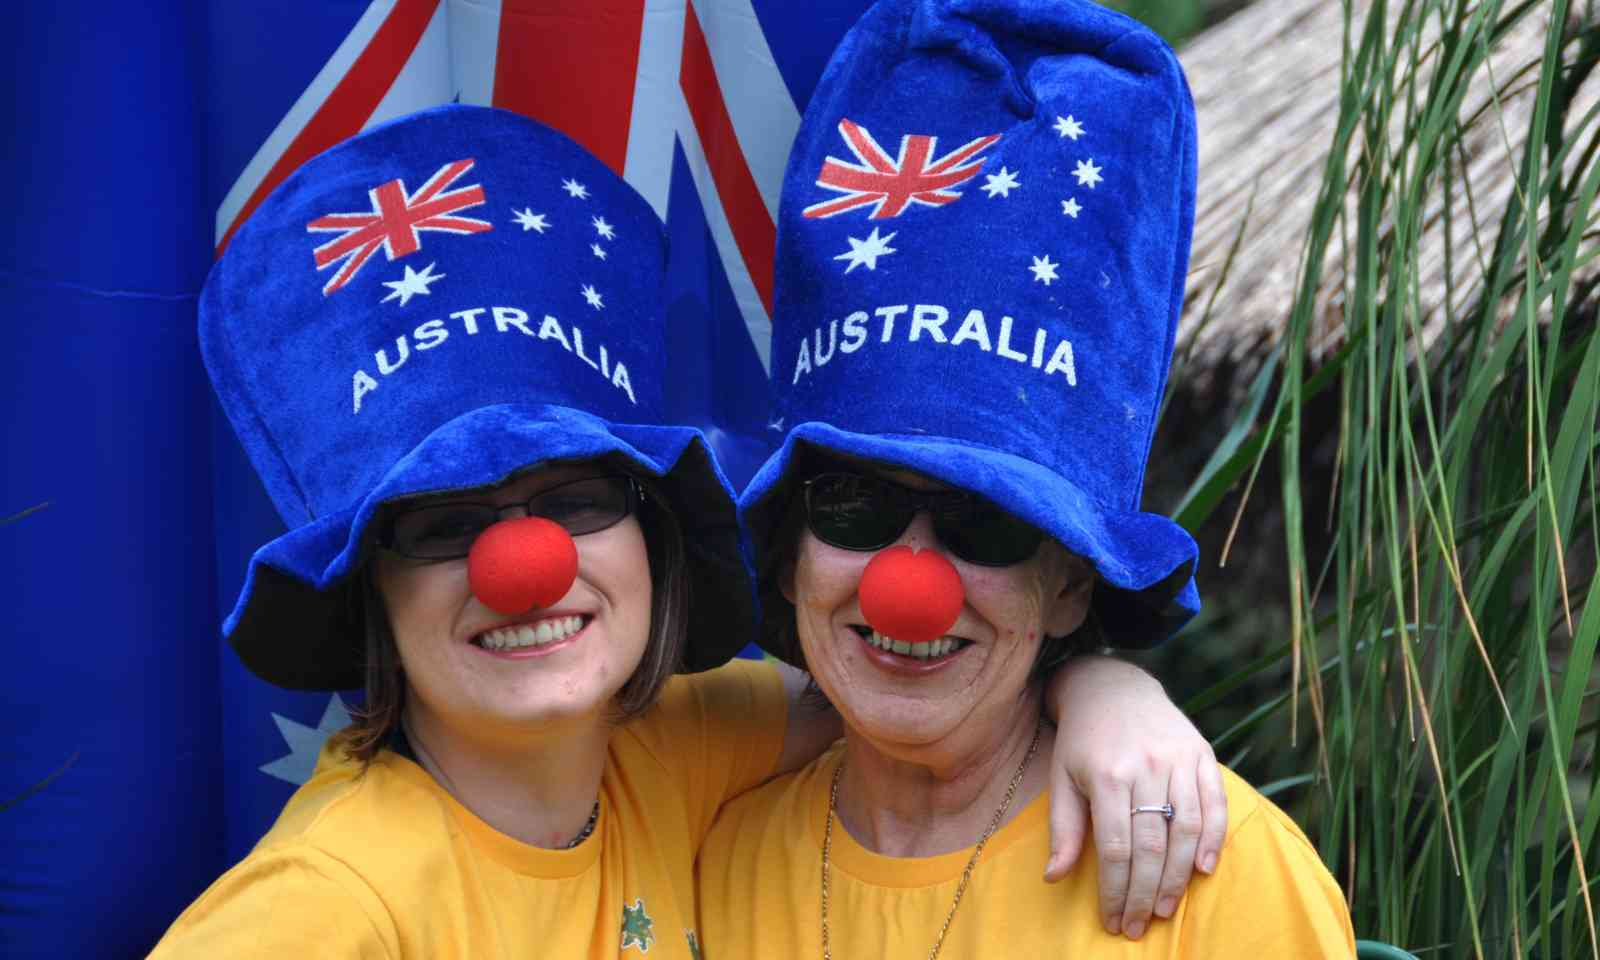 Mother and daughter celebrating Australia Day (Dreamstime)